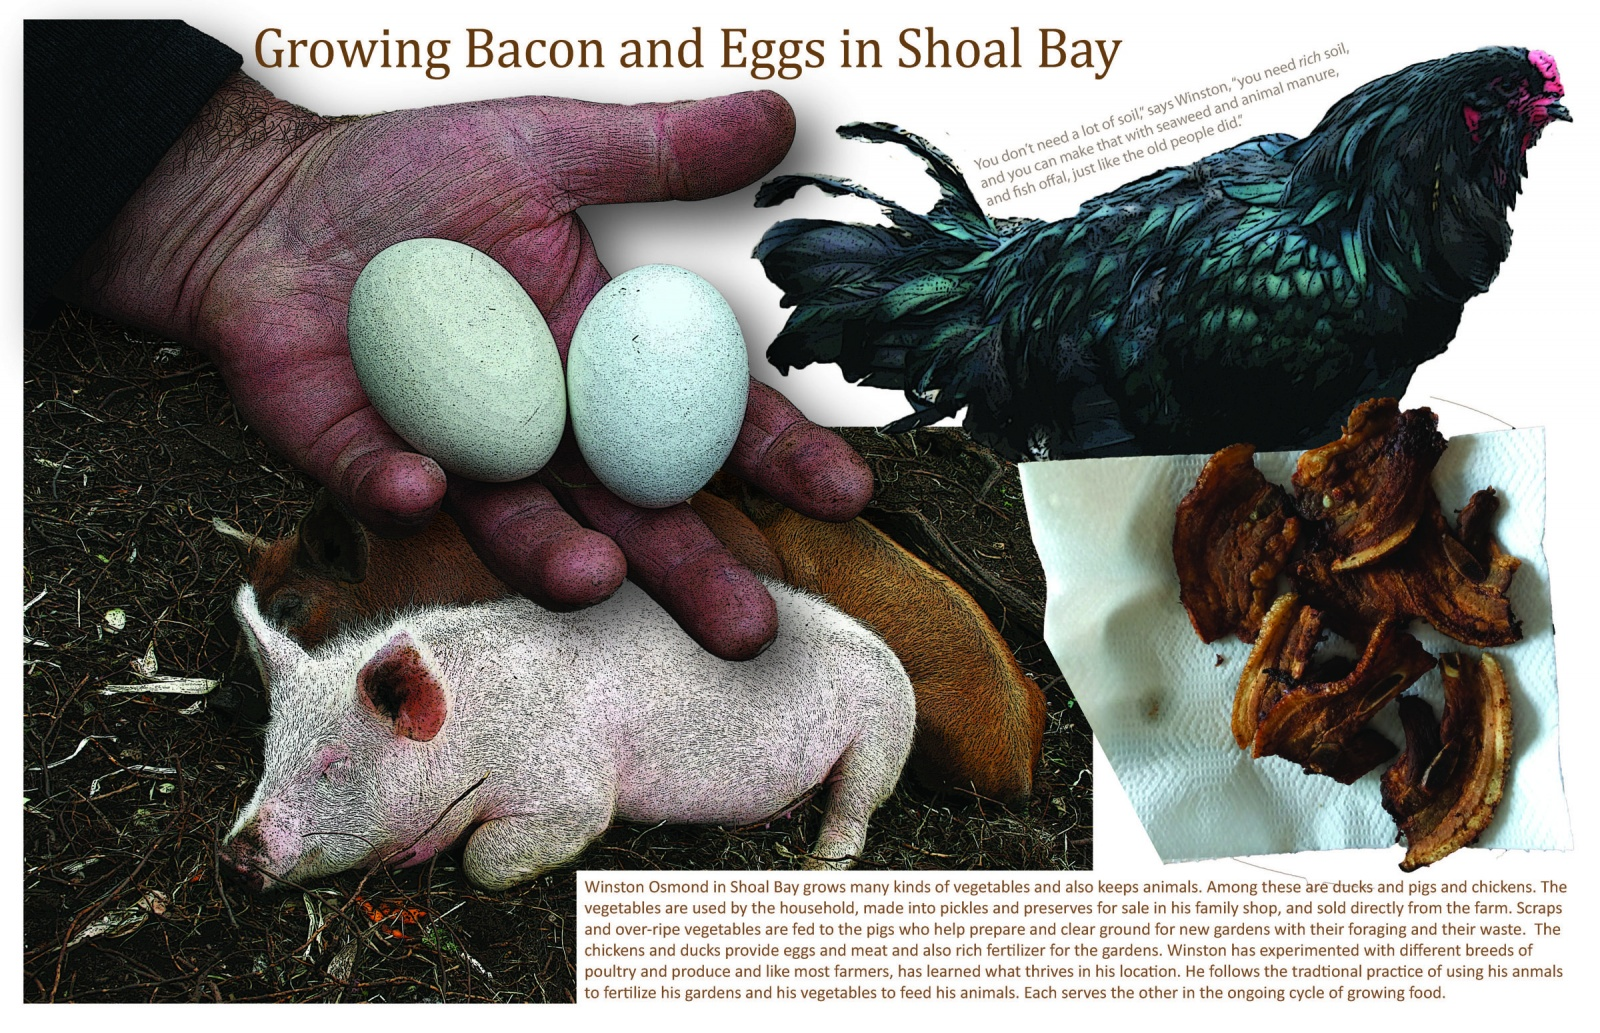 Growing Bacon and Eggs in Shoal Bay